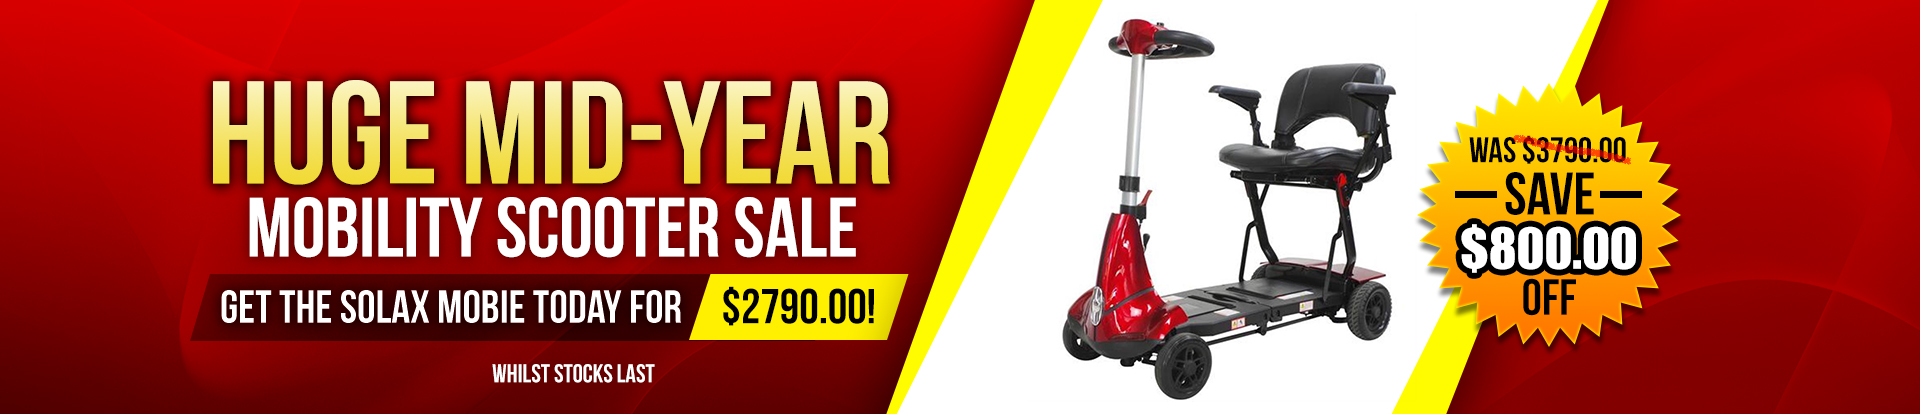 Lifestyle Mobility Mid Year Sale